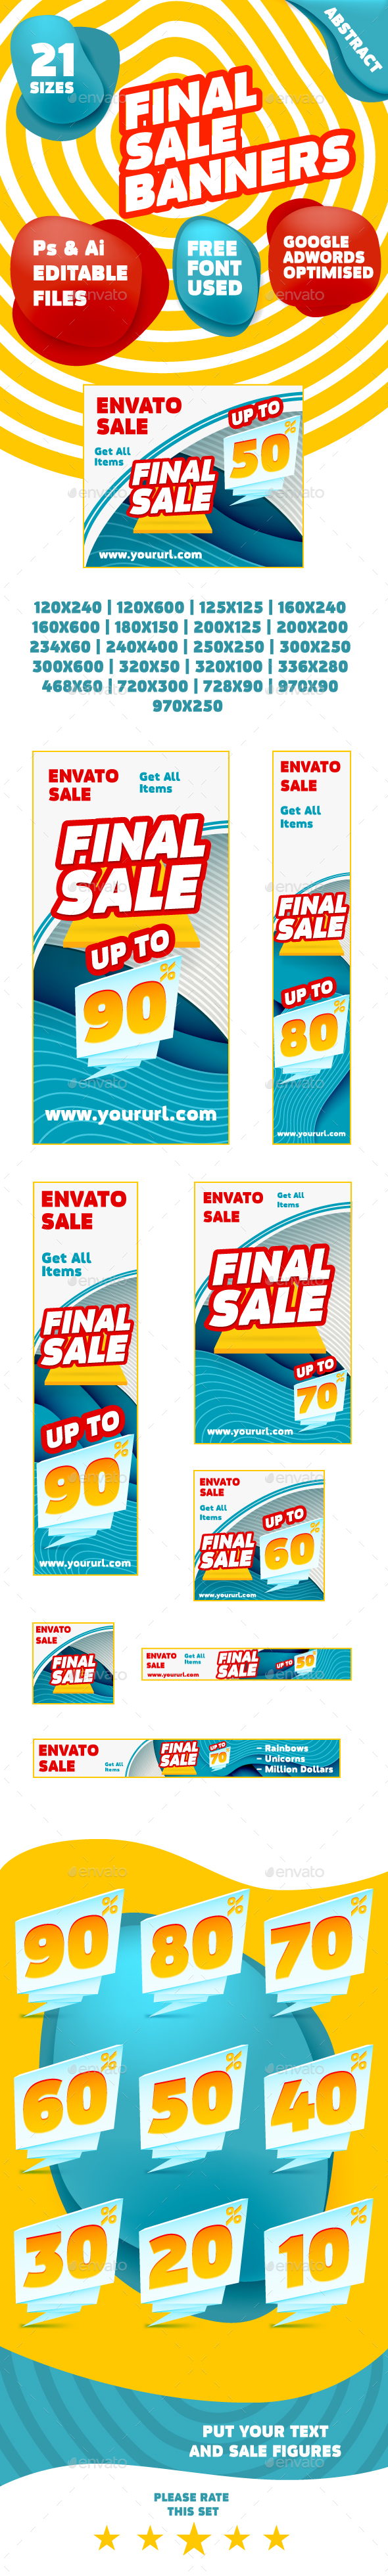 Product or Service Sale Web Banner Pack - Banners & Ads Web Elements